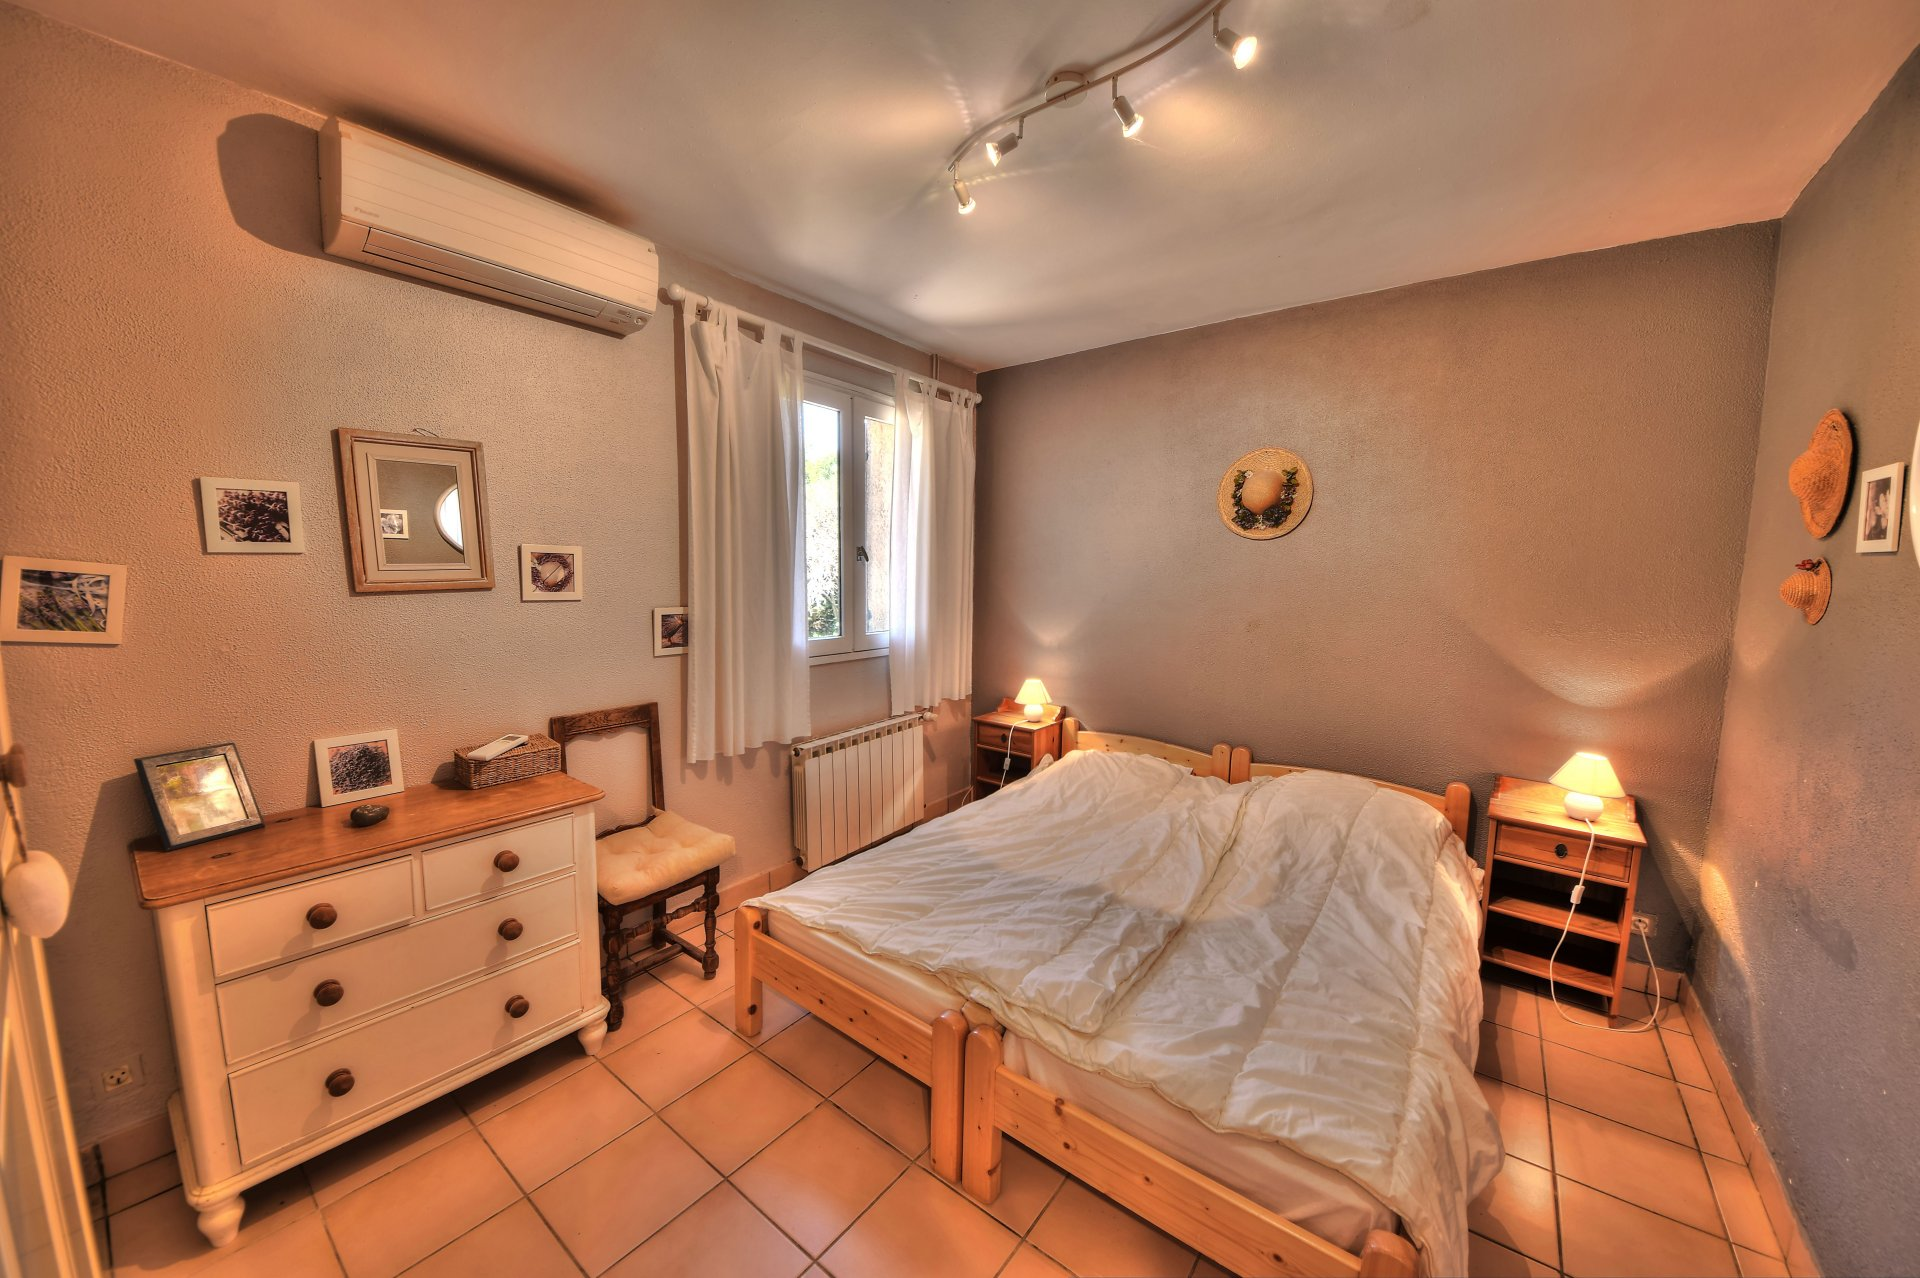 Bedroom 3 with air conditioning